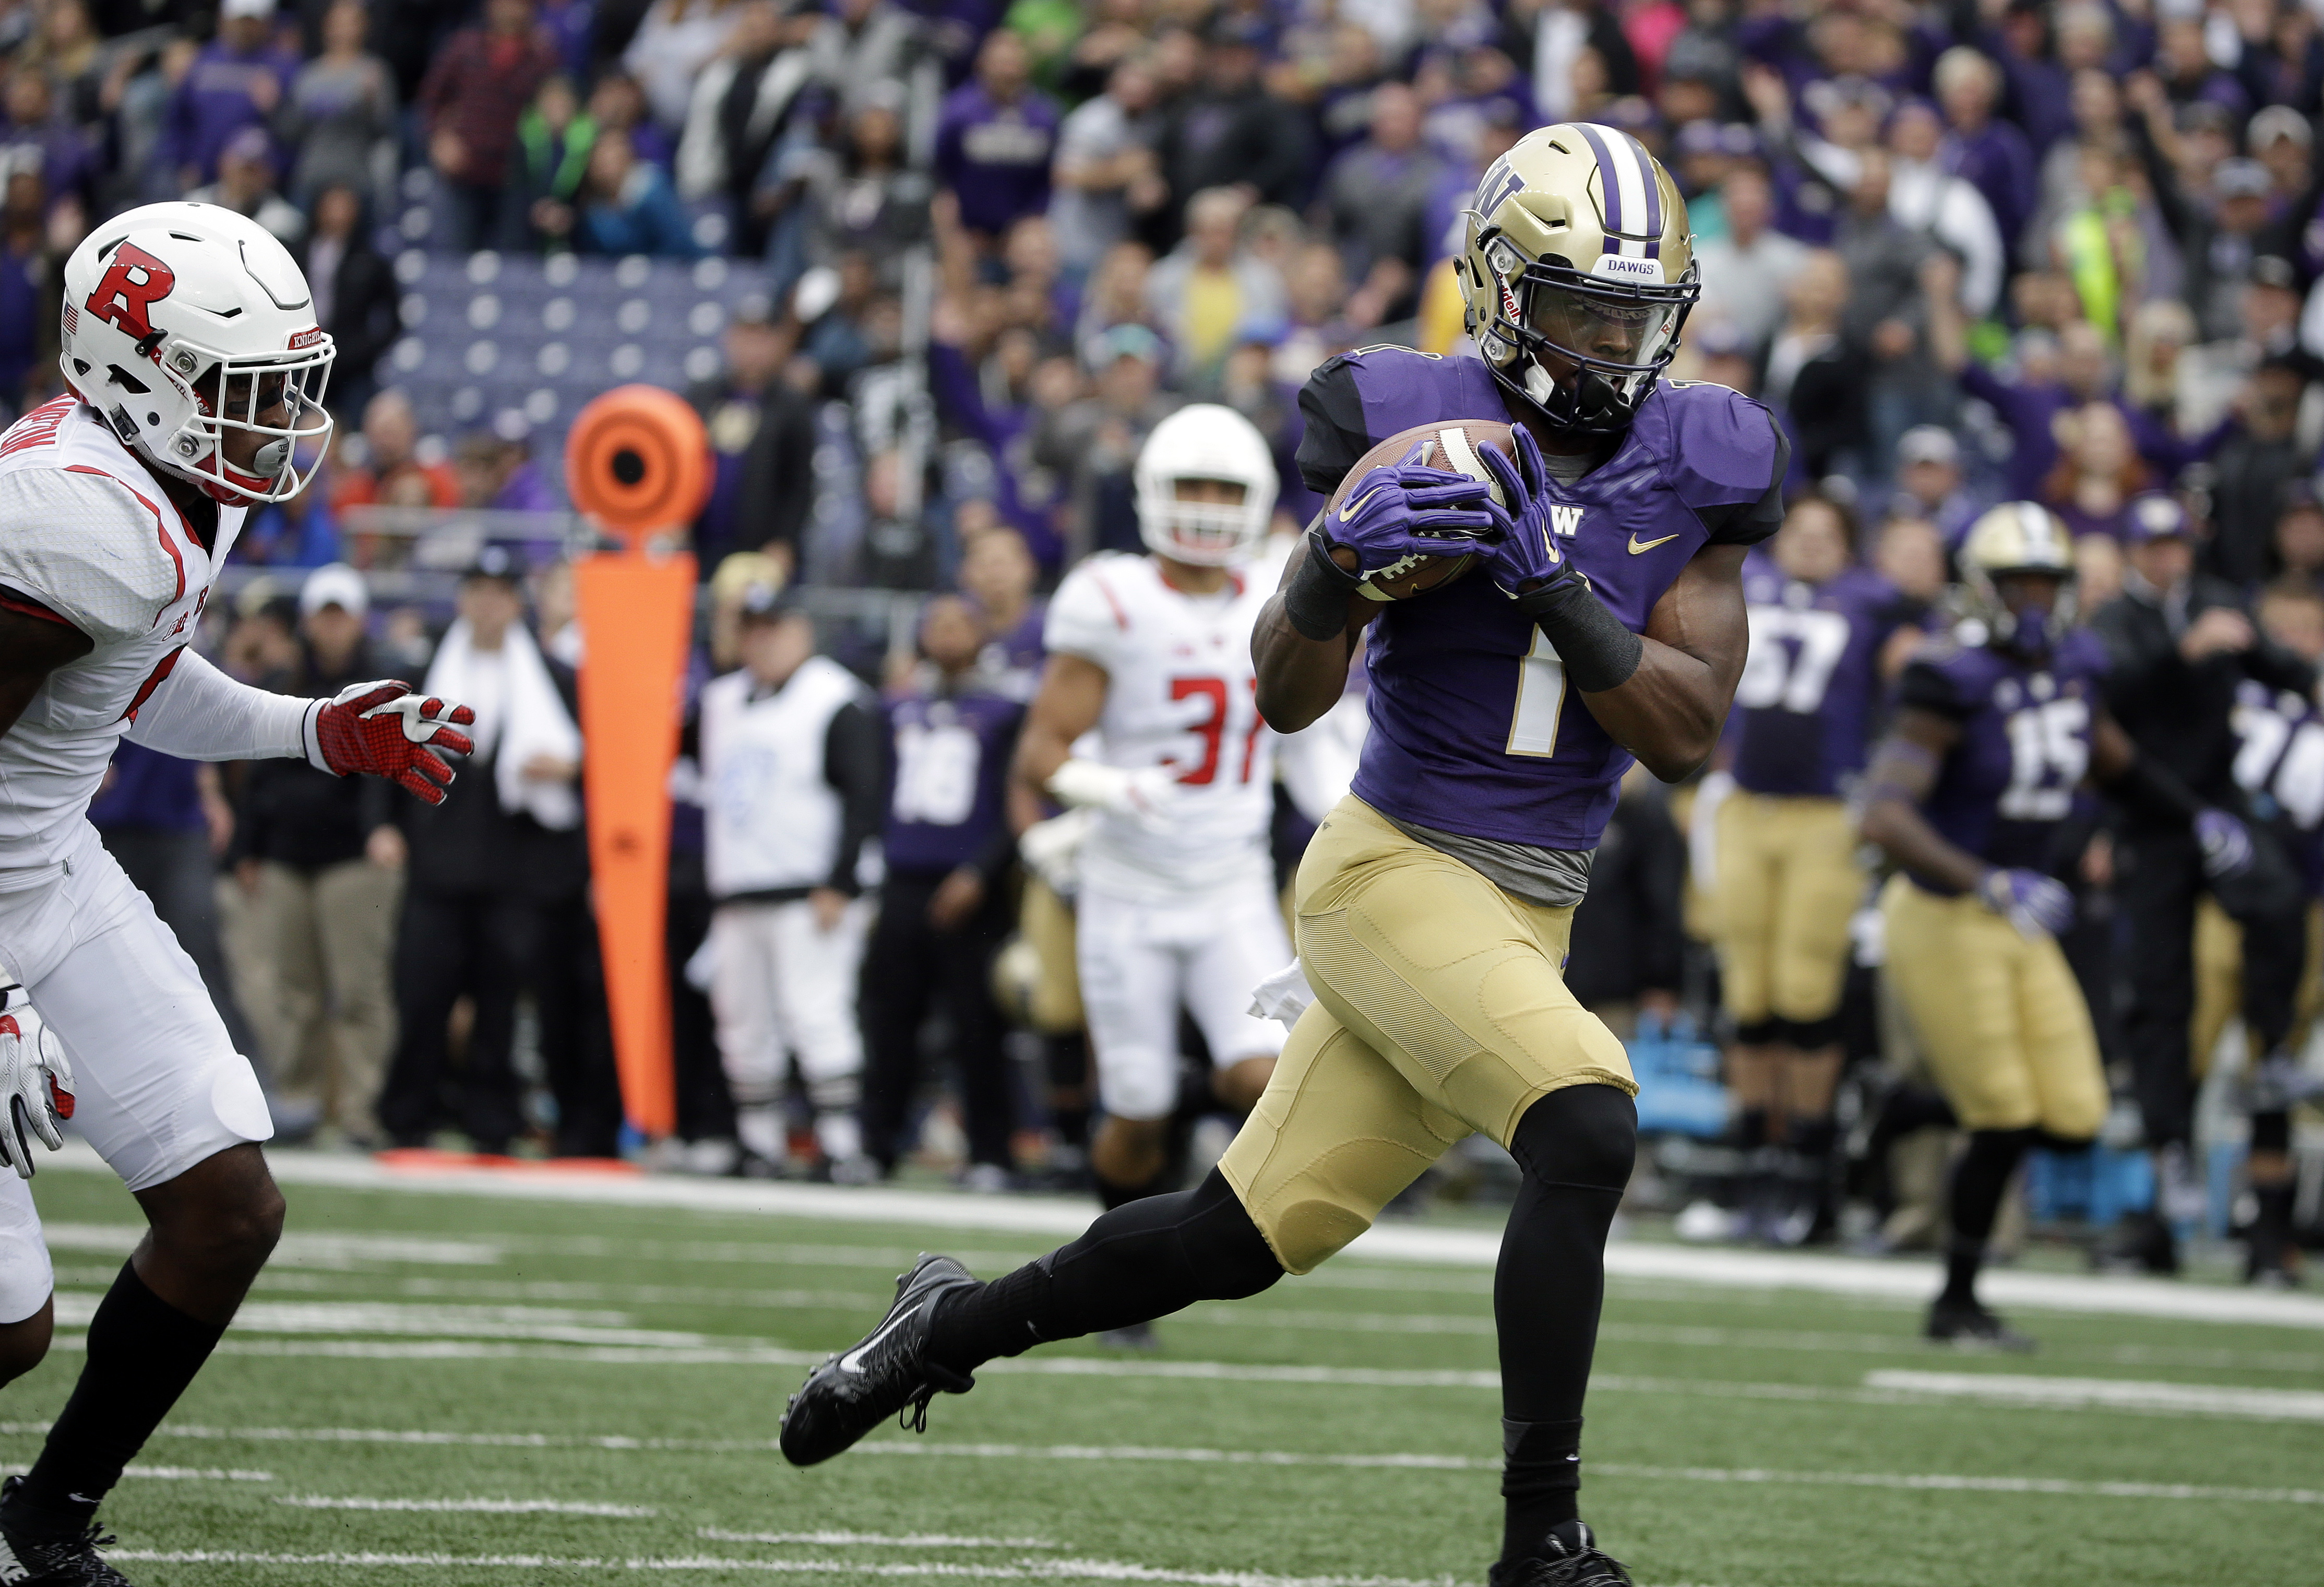 Washington's John Ross scores on a 50-yard pass against Rutgers in the first half of an NCAA college football game, Saturday, Sept. 3, 2016, in Seattle. (AP Photo/Elaine Thompson)